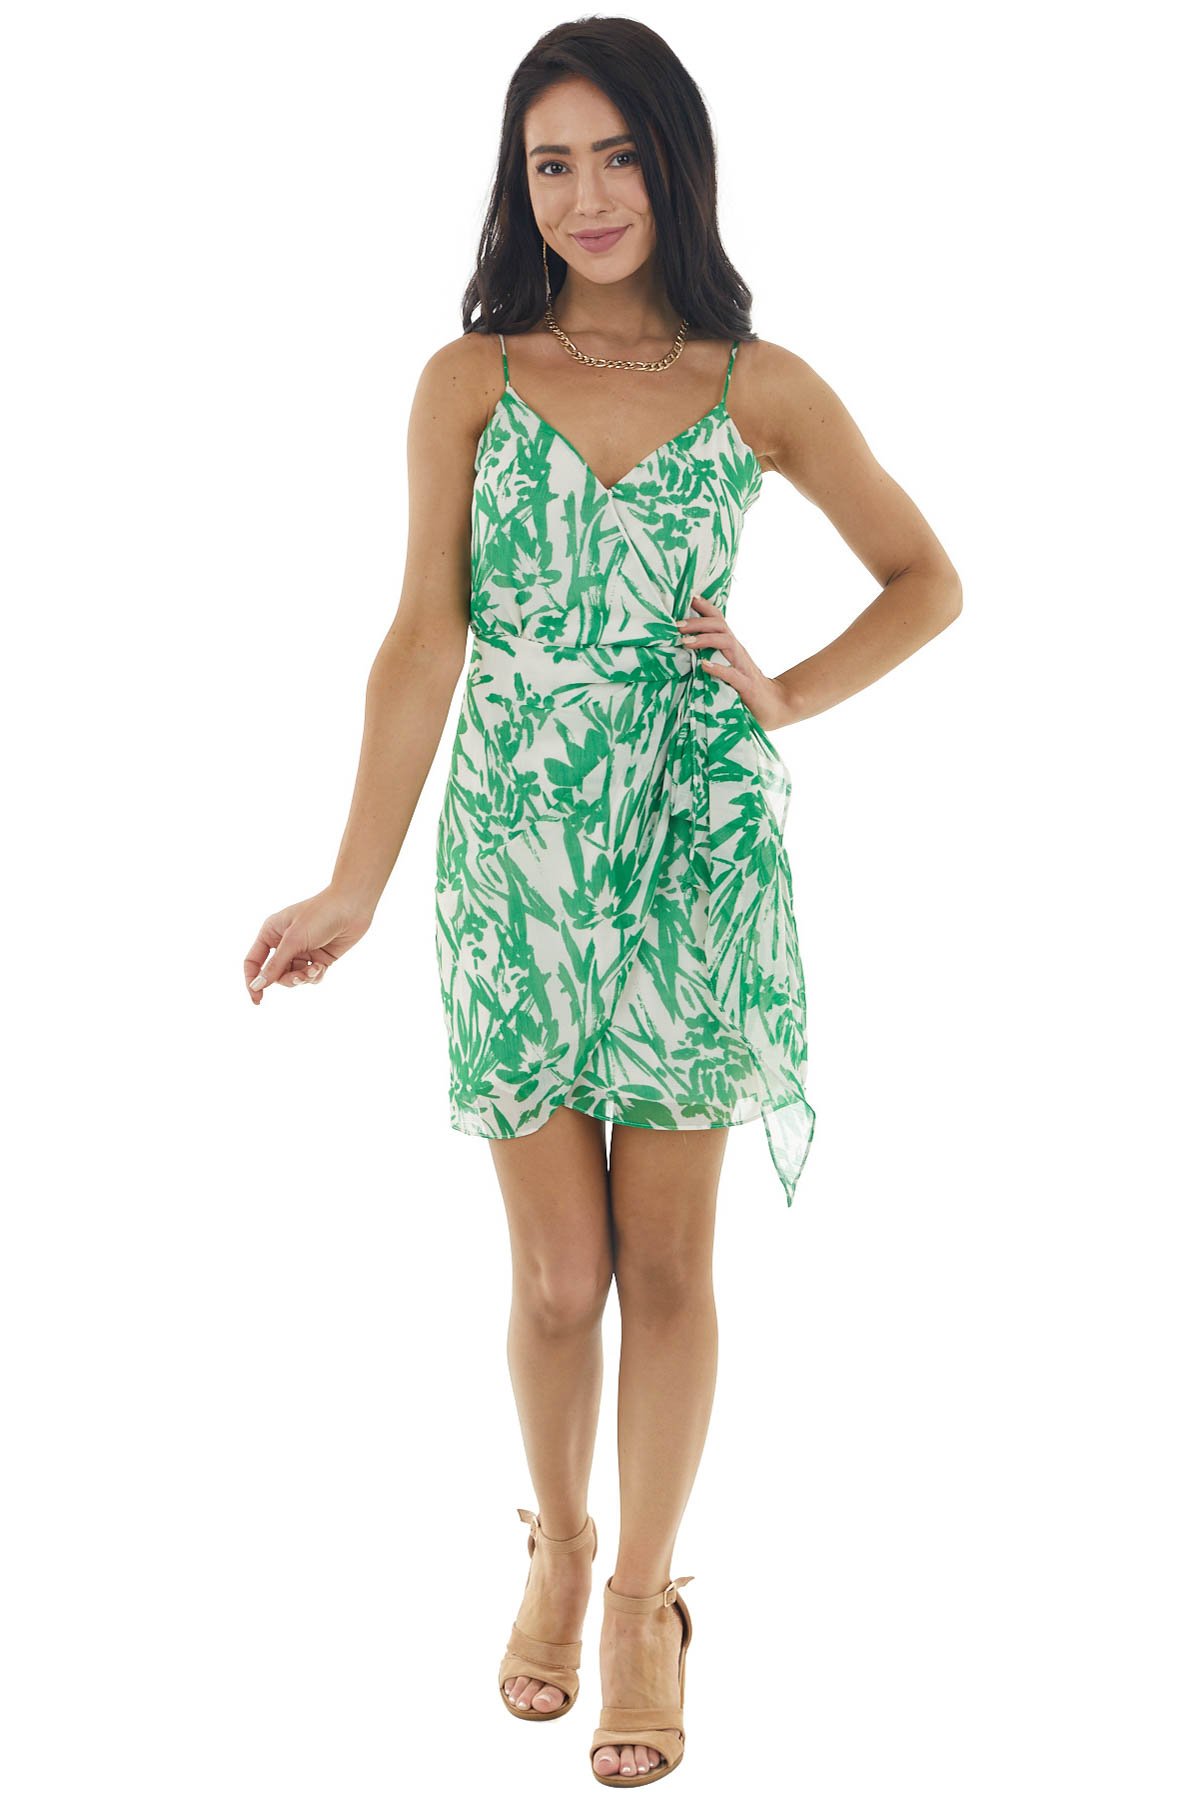 Kelly Green Floral Print Sleeveless Dress with Tie Detail